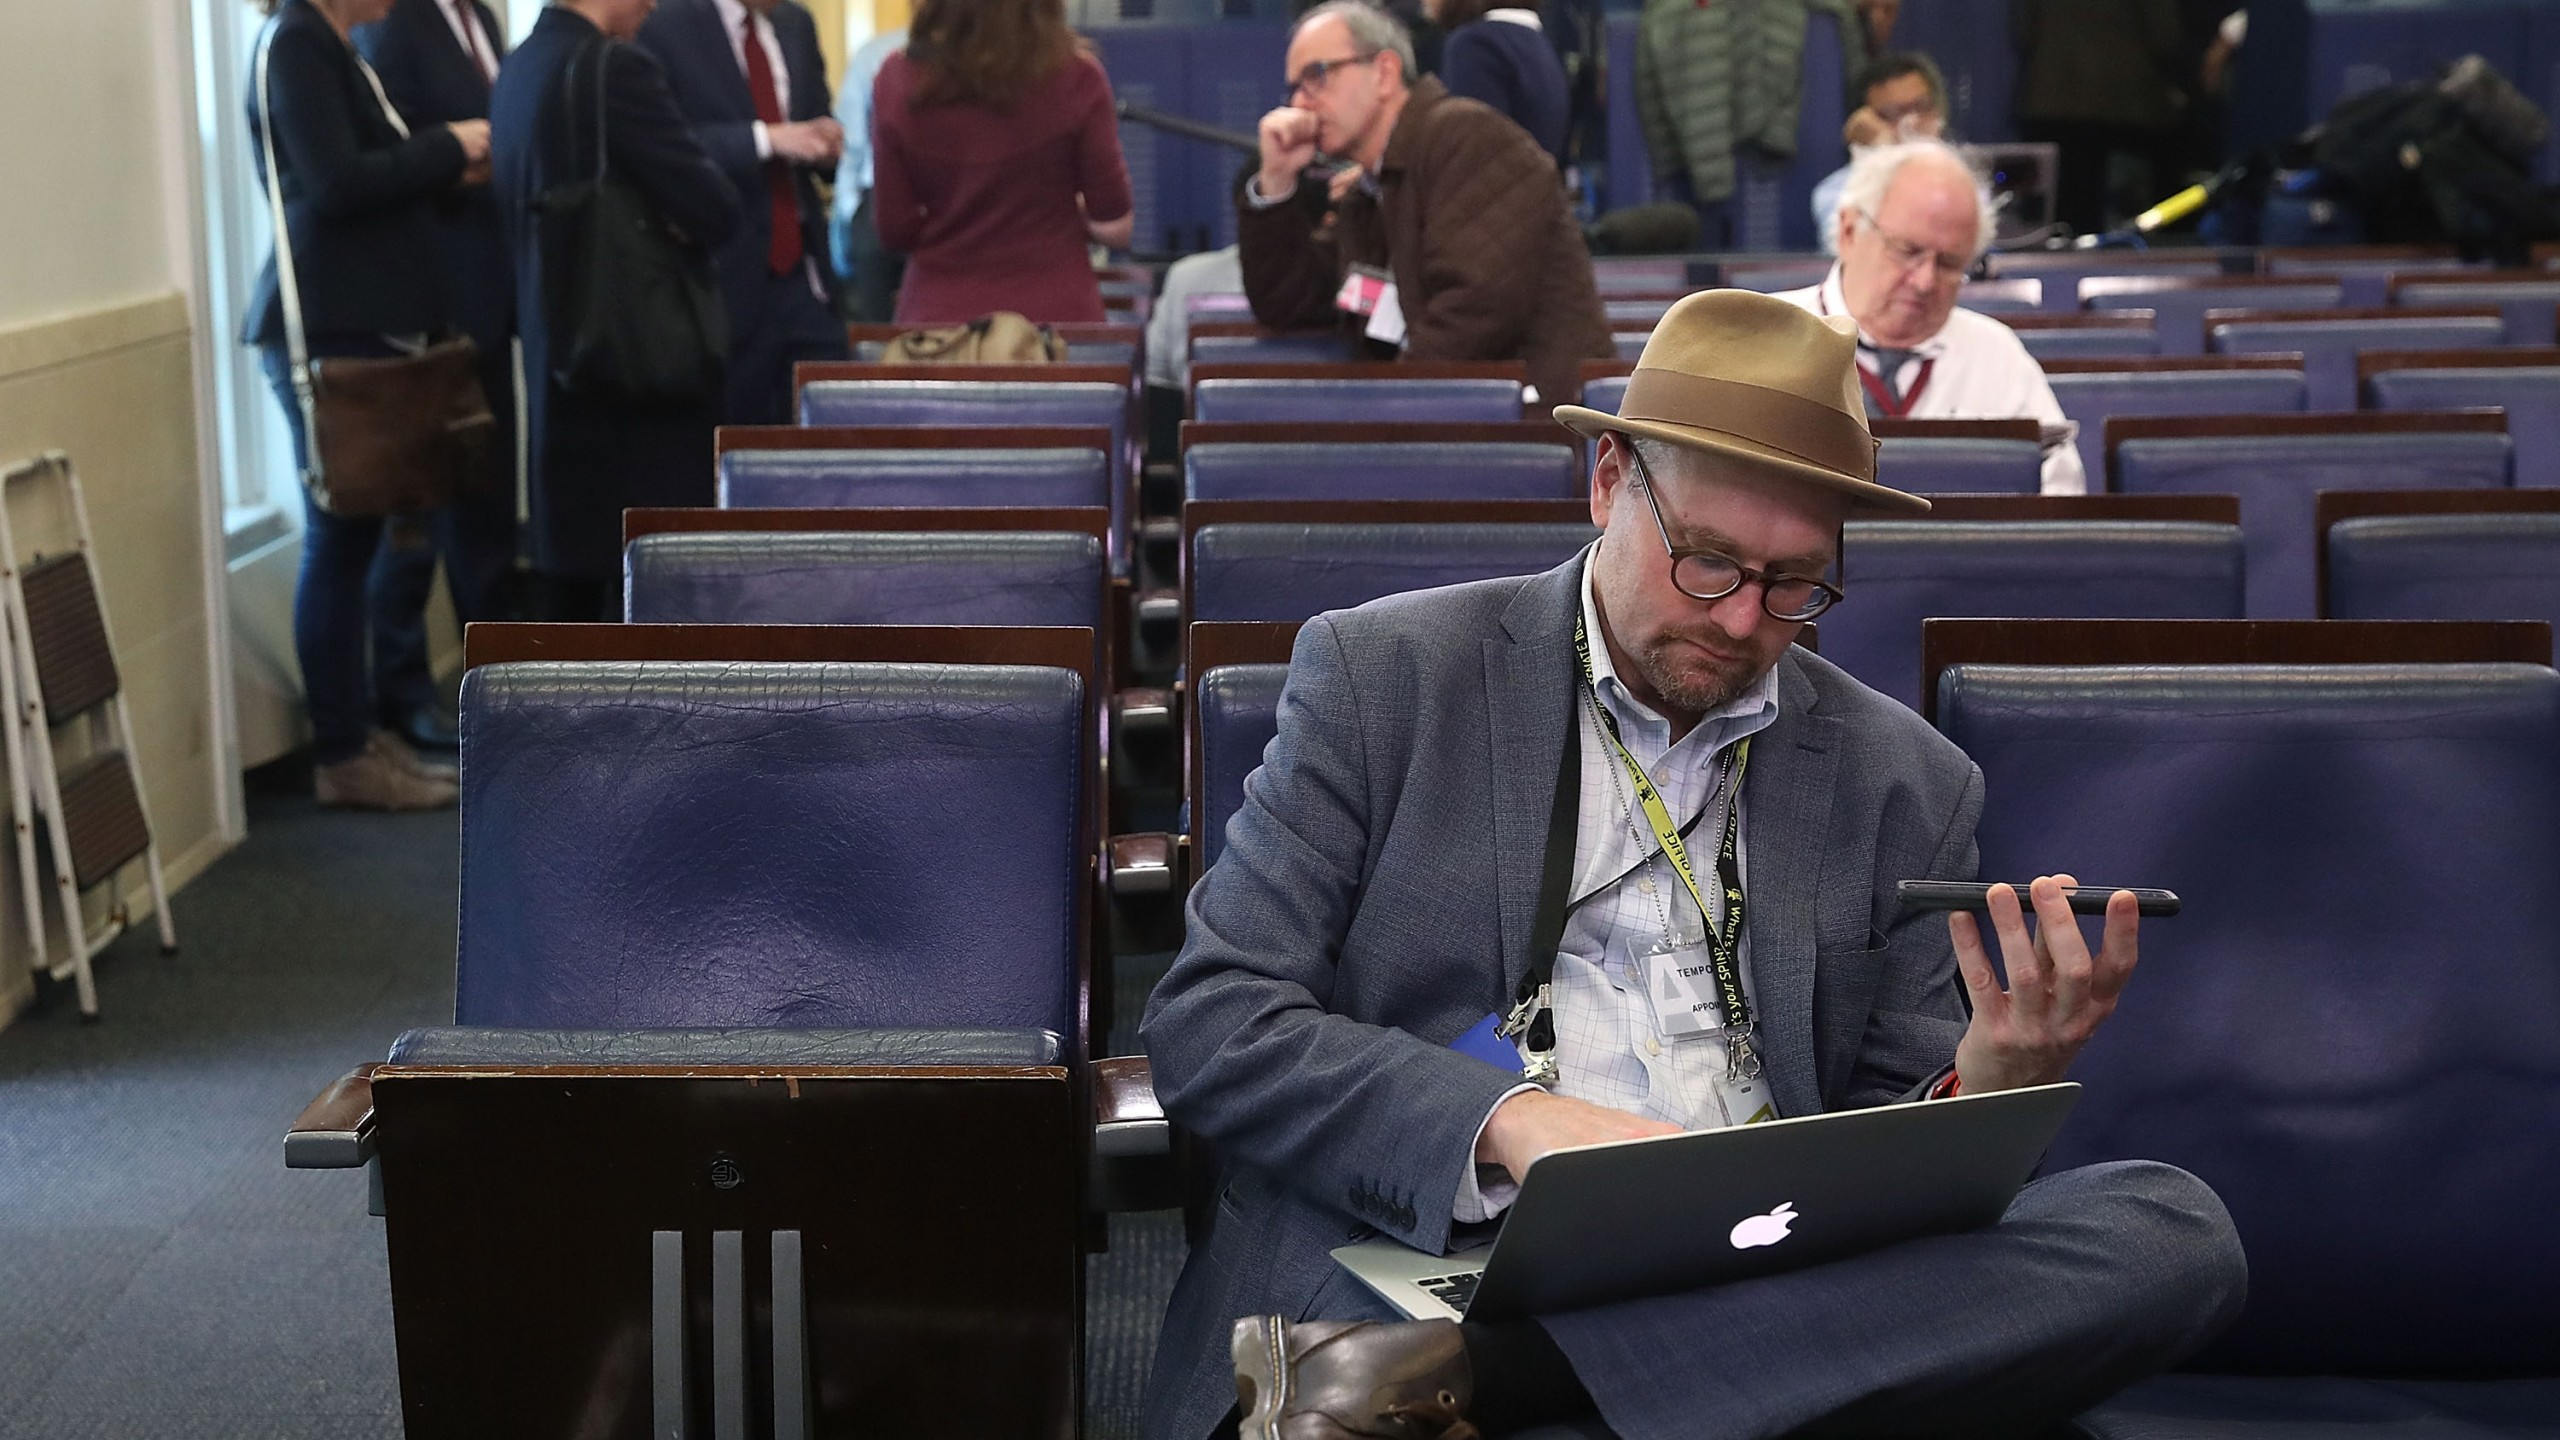 New York Times reporter Glenn Thrush works in the Brady Briefing Room after being excluded from a press gaggle by White House Press Secretary Sean Spicer, on February 24, 2017 in Washington, DC. (Credit: Mark Wilson/Getty Images)